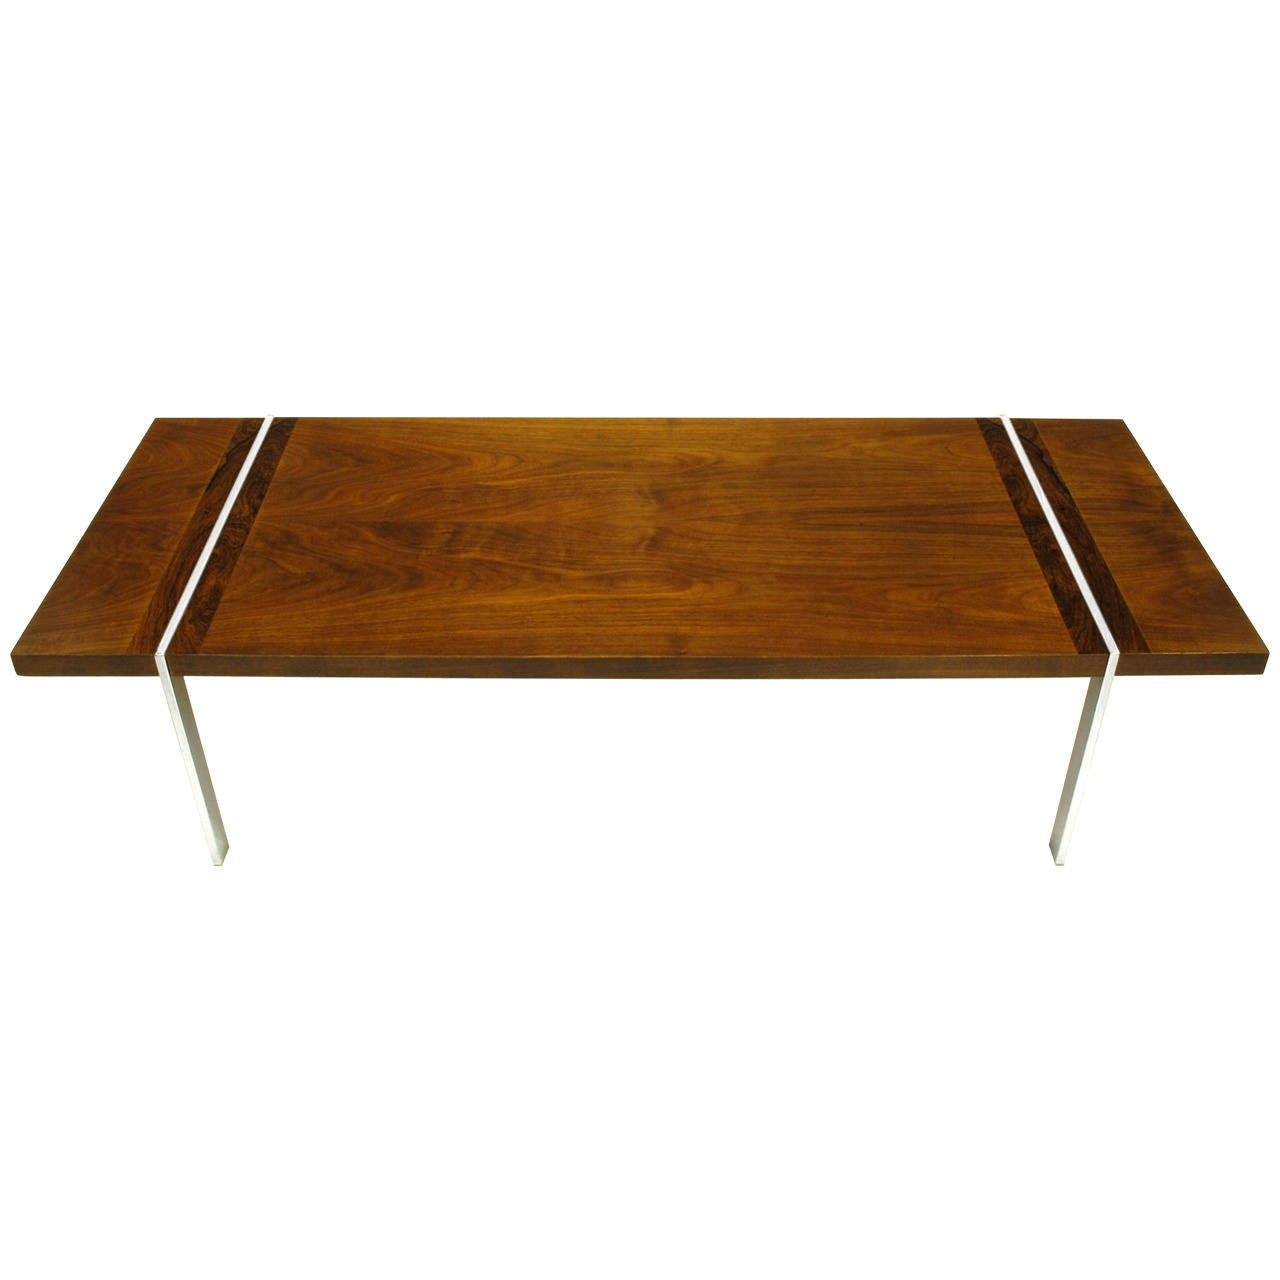 Chrome Coffee Table Items: Chrome, Walnut And Rosewood Tripartite Coffee Table By